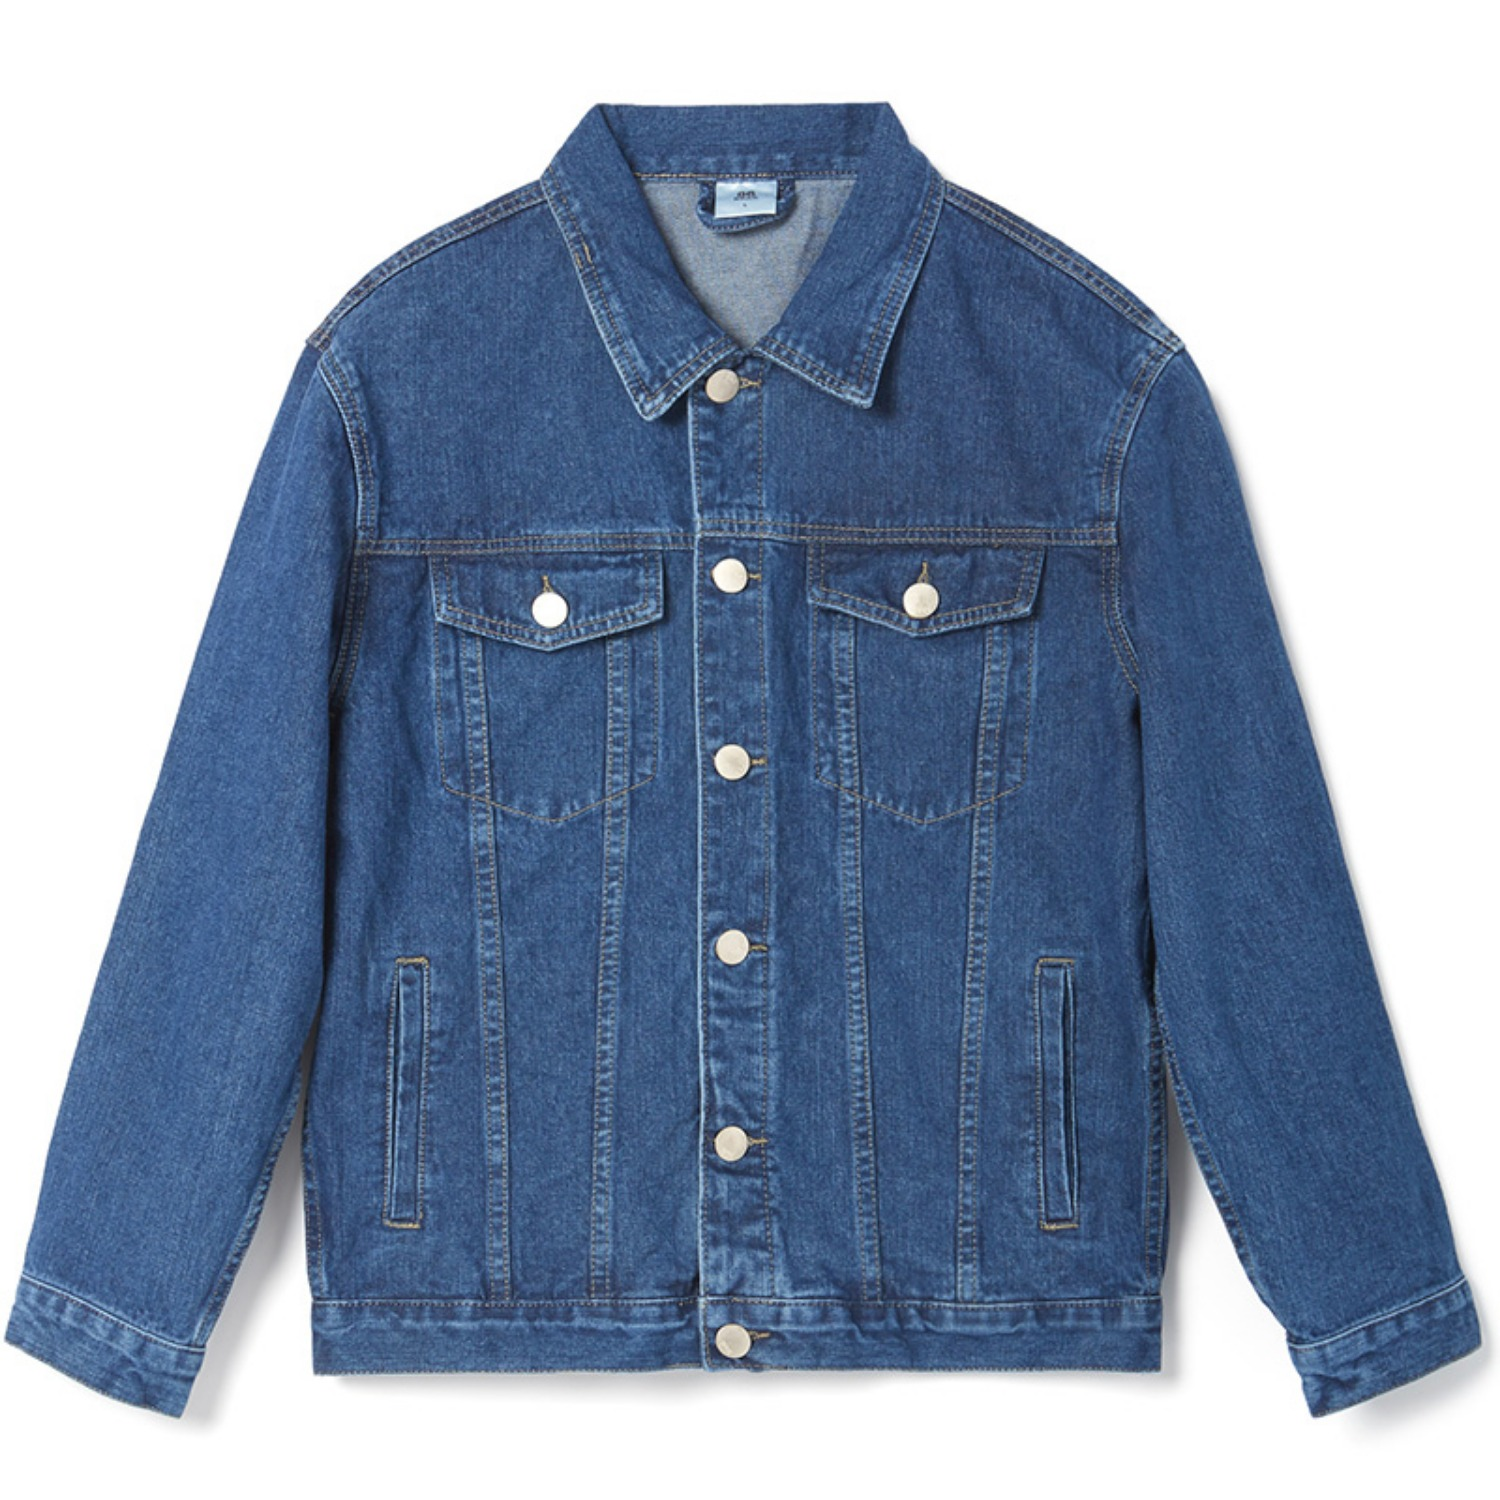 Steady Washing Denim Jacket - Blue